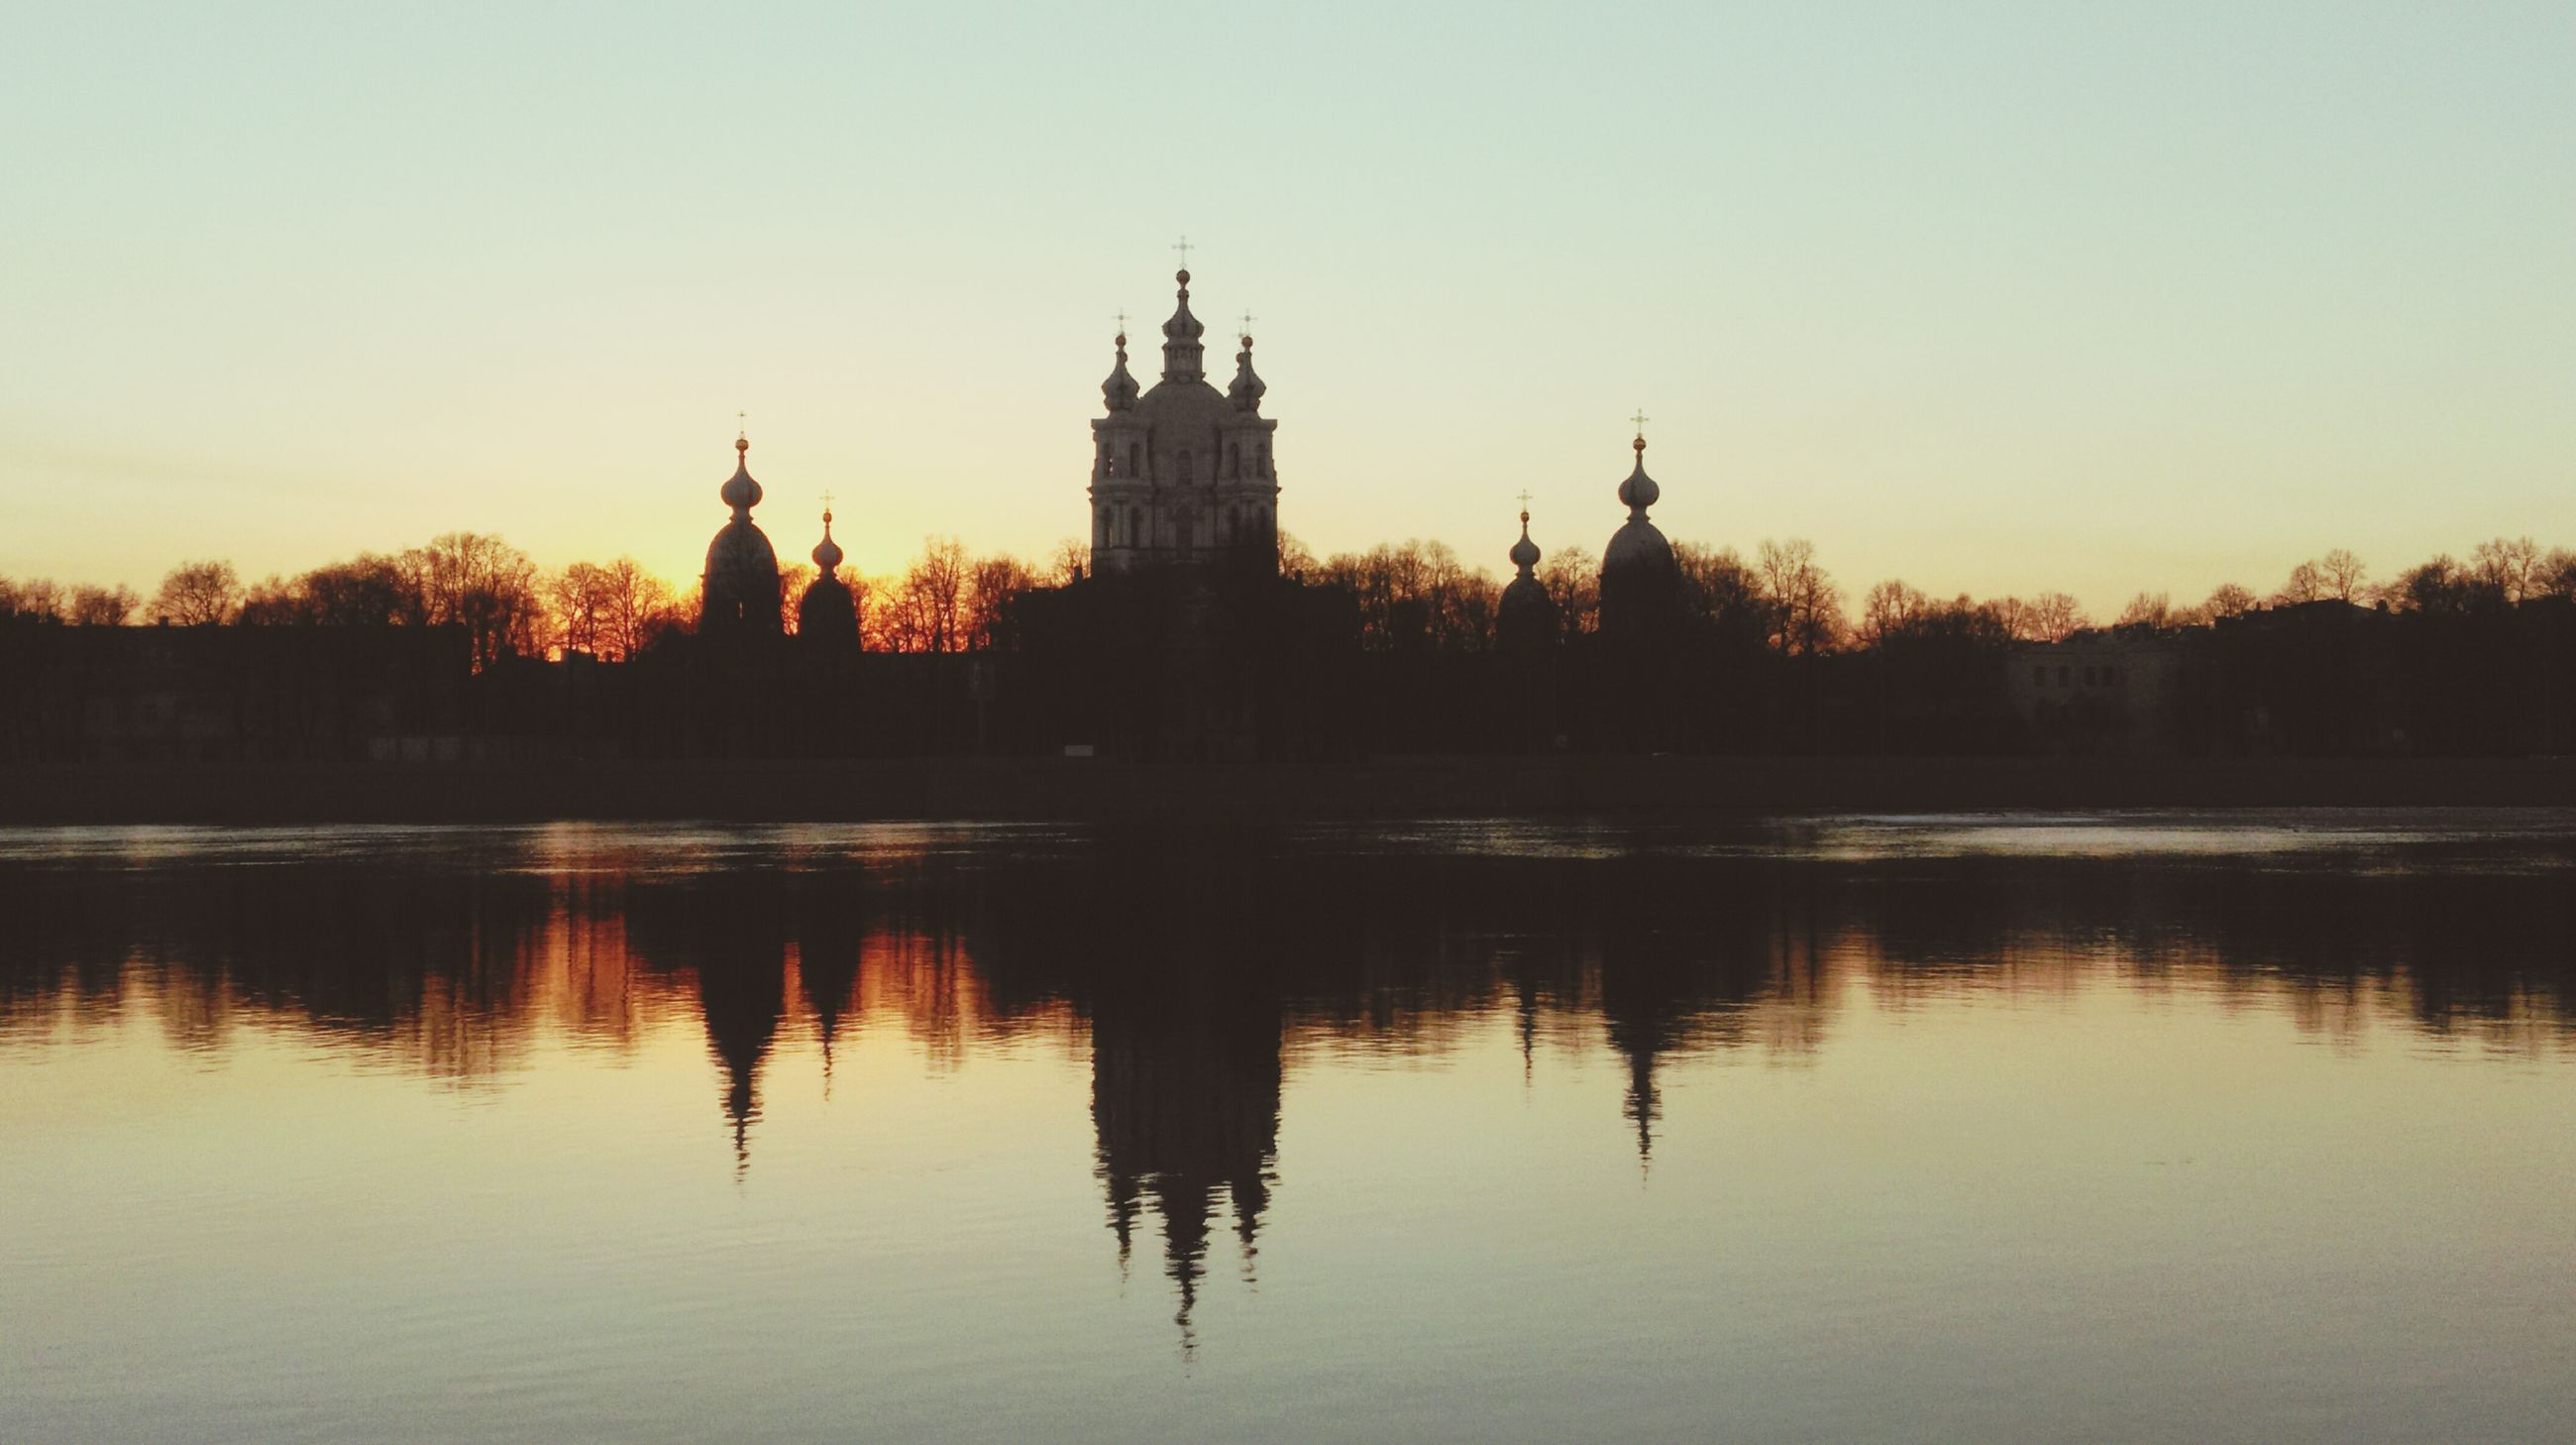 architecture, building exterior, built structure, sunset, reflection, water, waterfront, clear sky, lake, river, silhouette, copy space, tree, sky, tower, religion, spirituality, place of worship, orange color, travel destinations